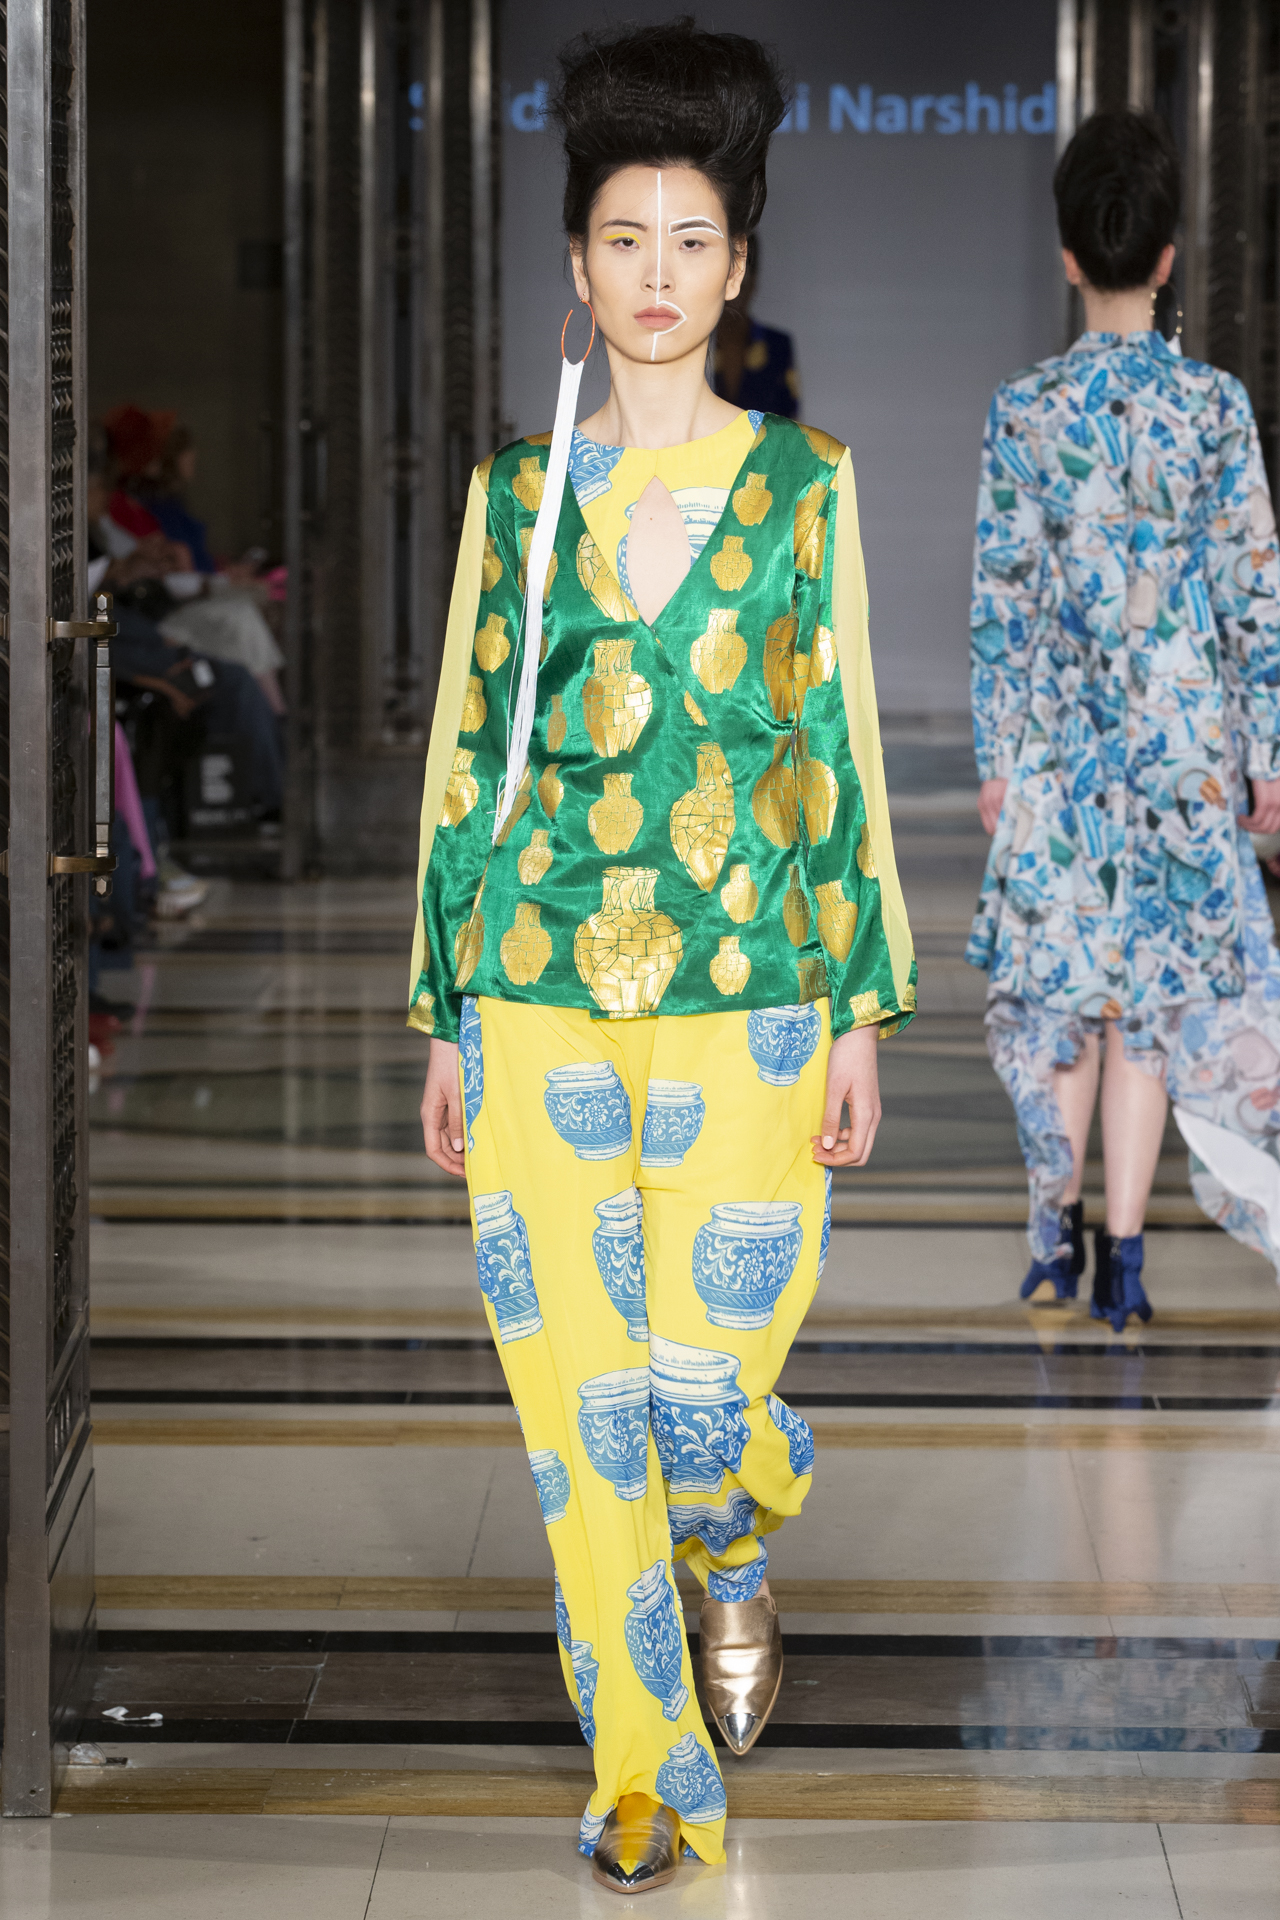 unwinding india - This collective of designers showcased colour and creativity in equal measure.Here's my pick of the best looks from each show…Photo Credit: Simon Armstrong